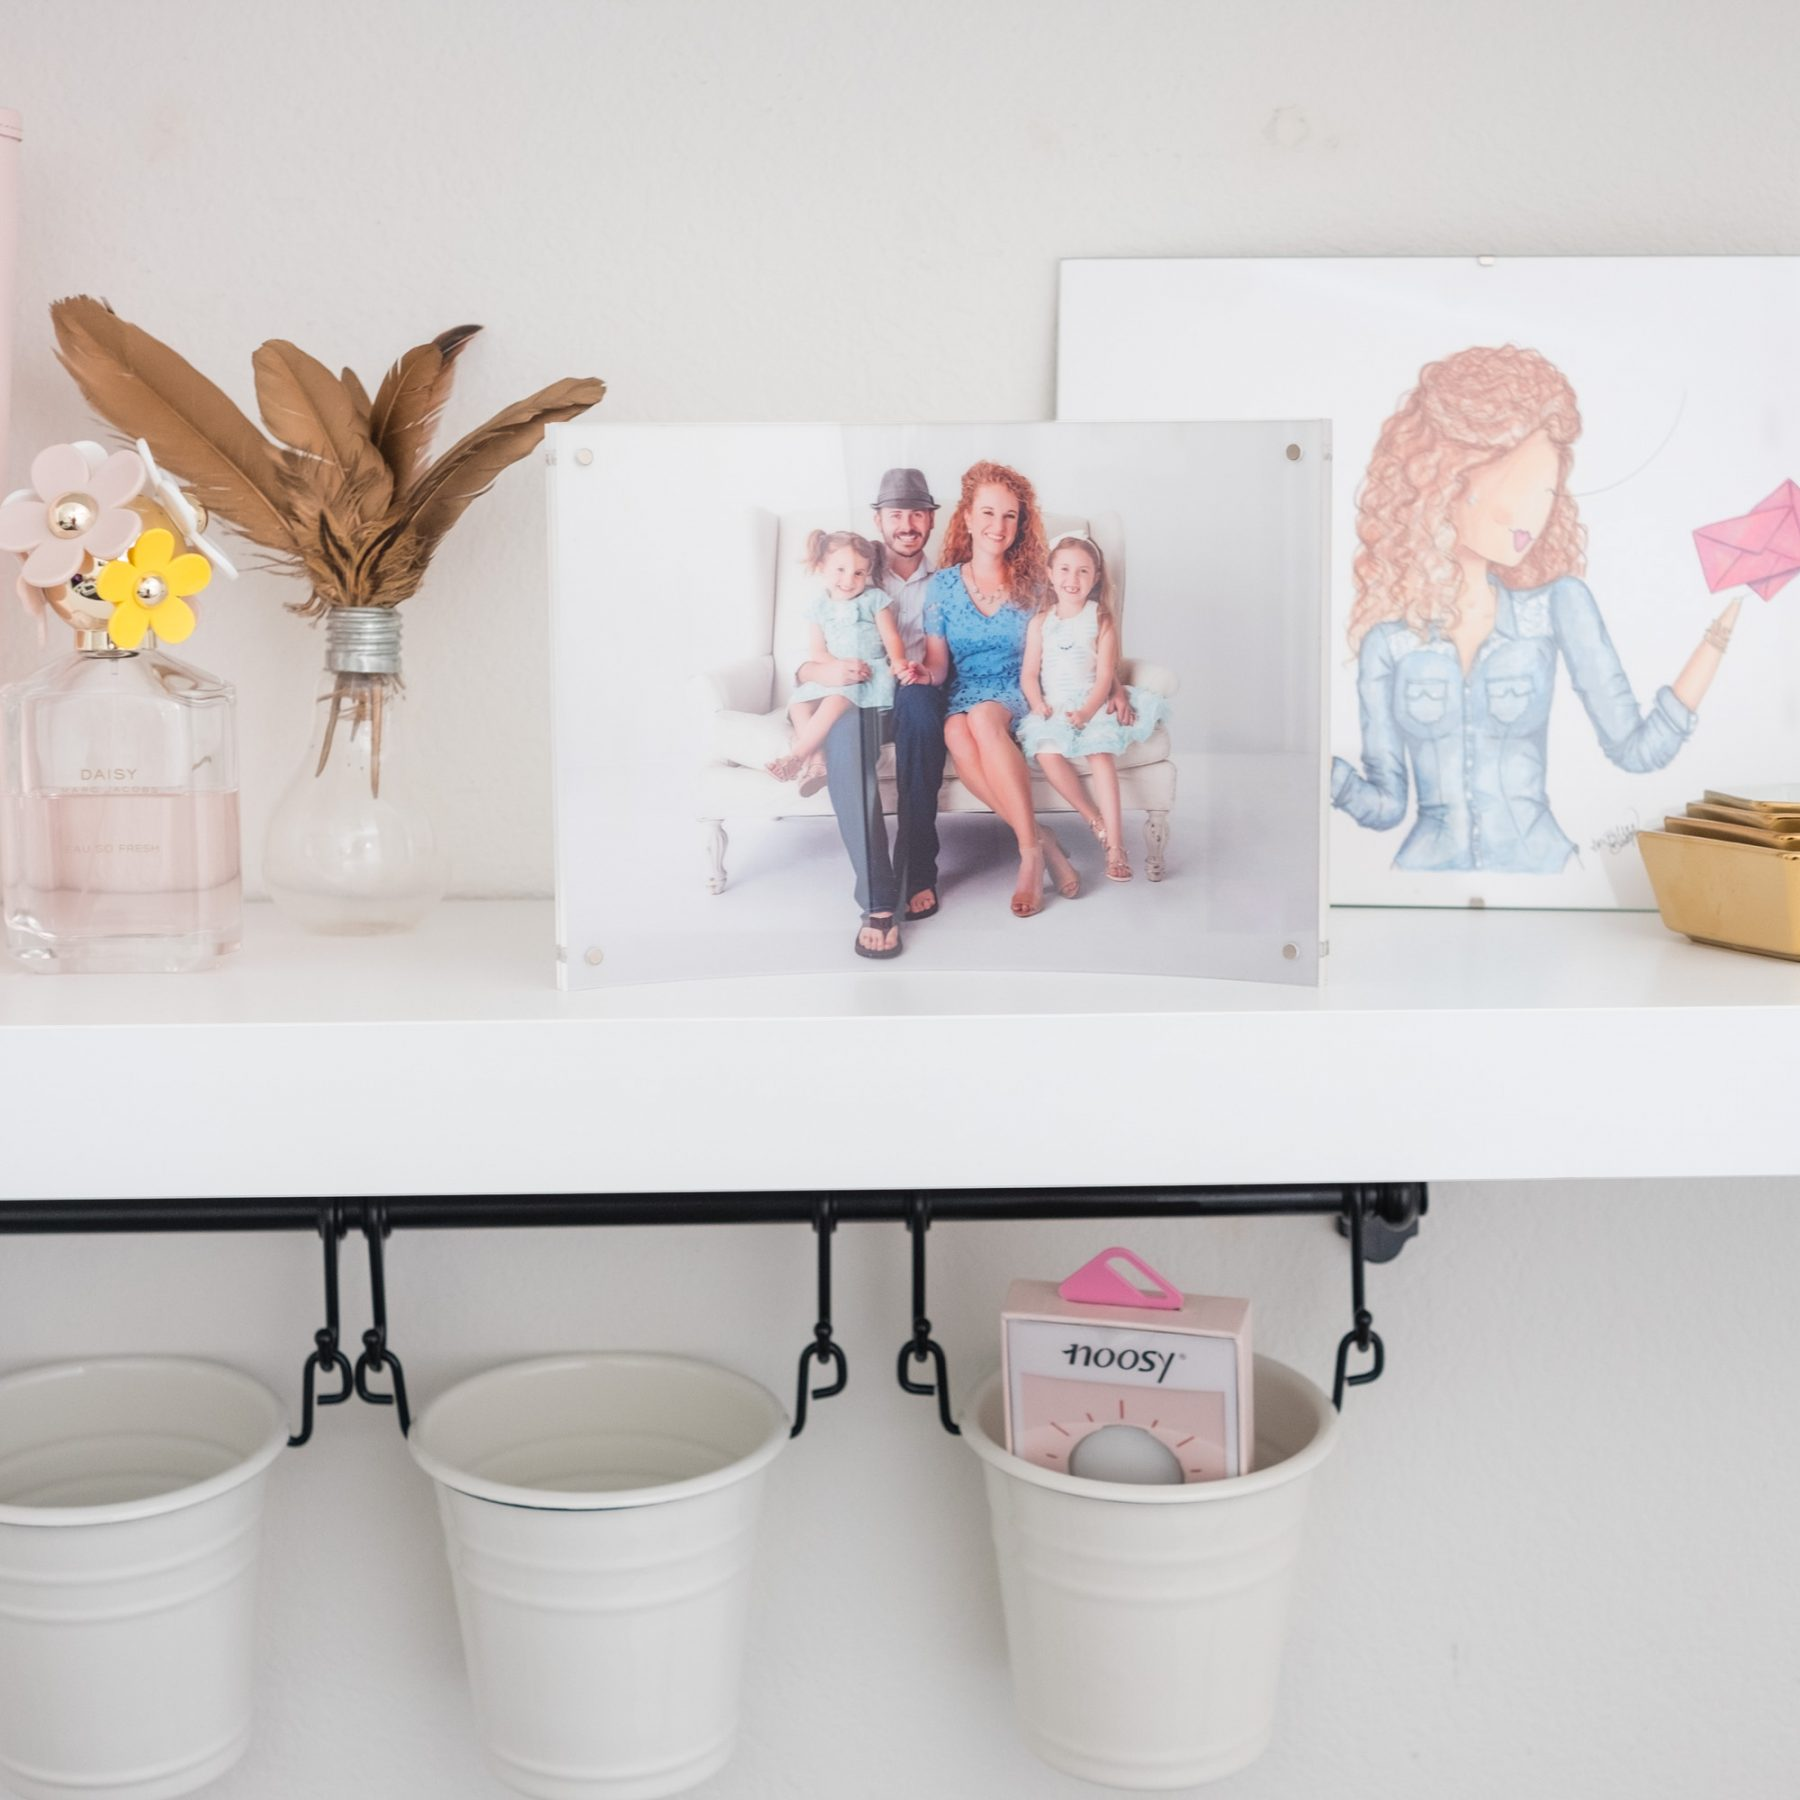 Subscription box for pictures